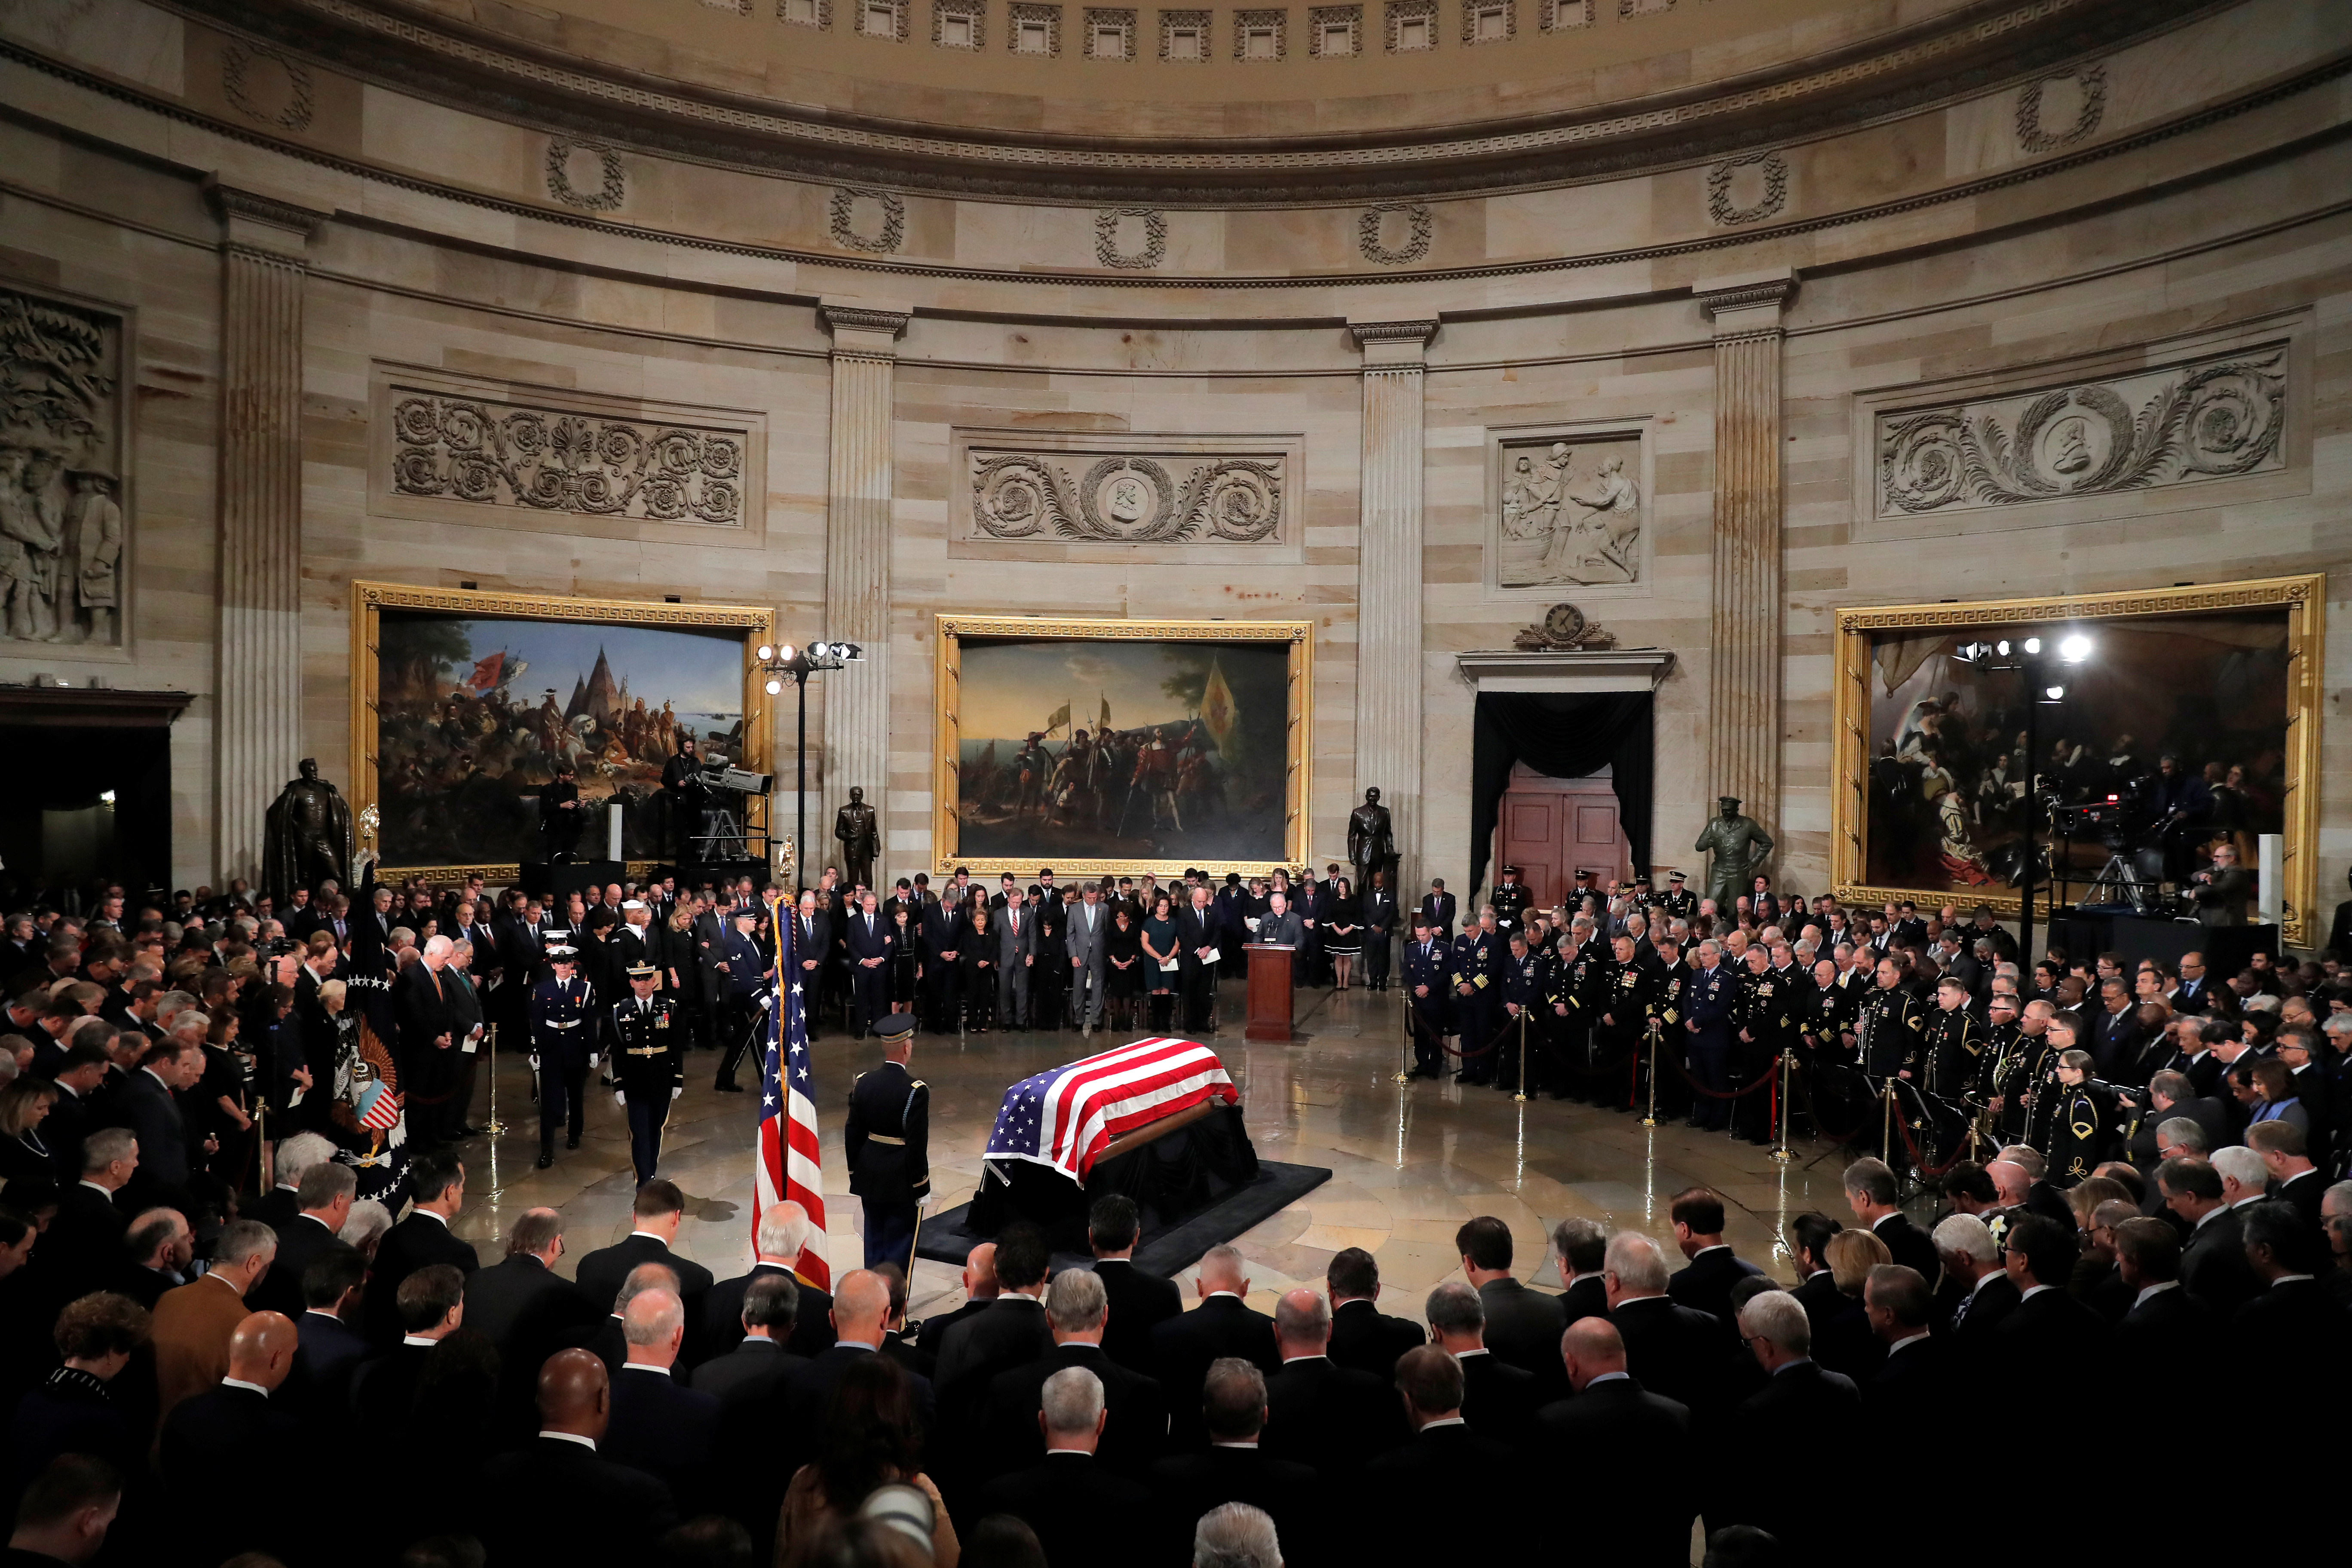 The casket carrying the remains of the late former U.S. President George H.W. Bush stands inside the U.S. Capitol rotunda during ceremonies in Washington D.C., U.S., December 3, 2018. (REUTERS/Eric Thayer)